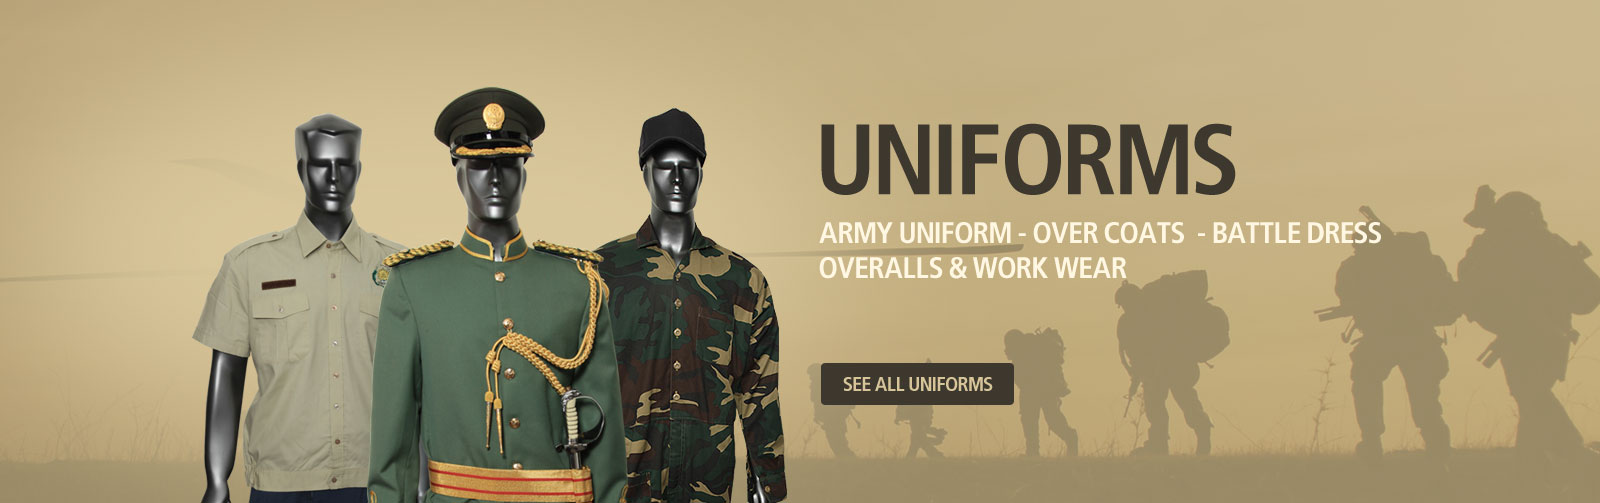 Army Uniforms India